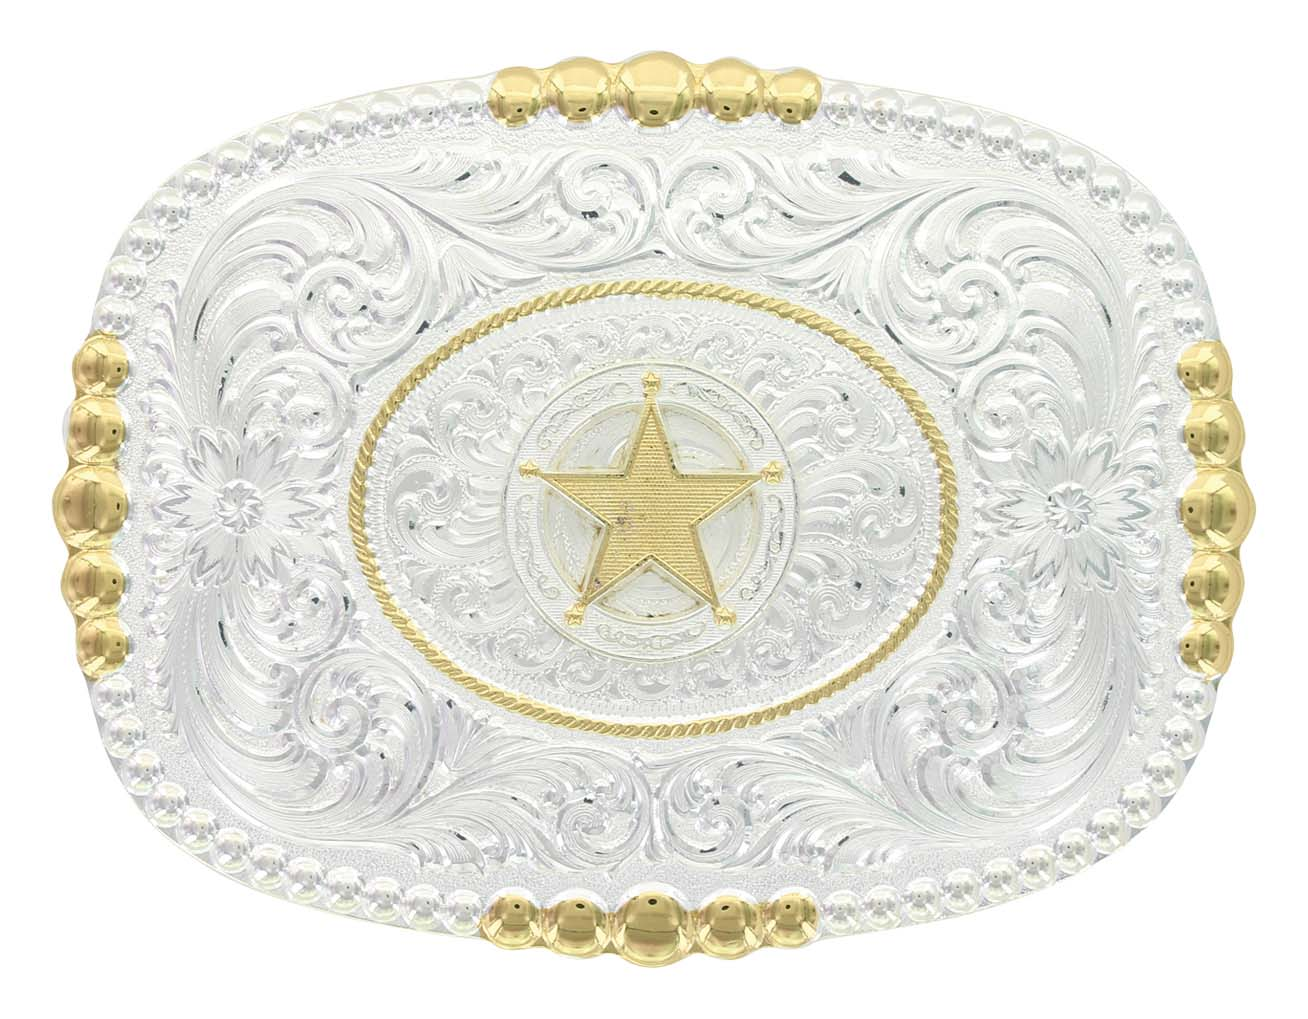 Two Tone Pioneer Portrait Buckle with Concho Star